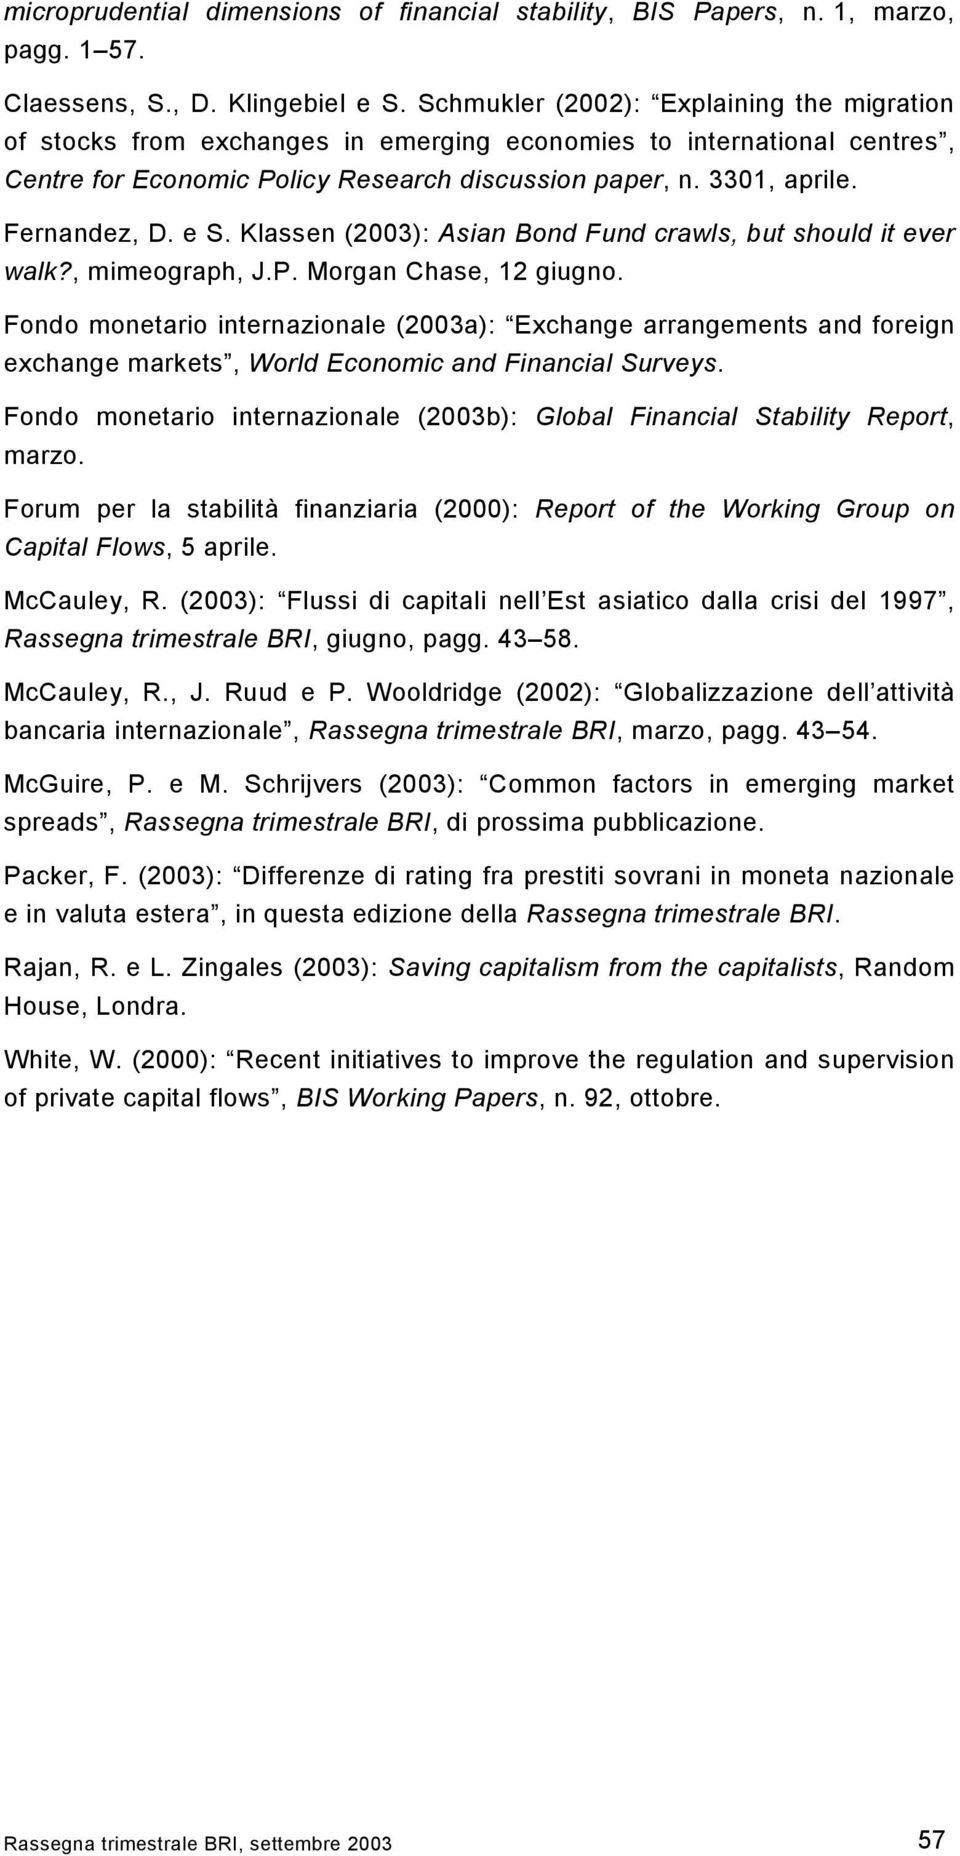 e S. Klassen (23): Asian Bond Fund crawls, but should it ever walk?, mimeograph, J.P. Morgan Chase, 12 giugno.